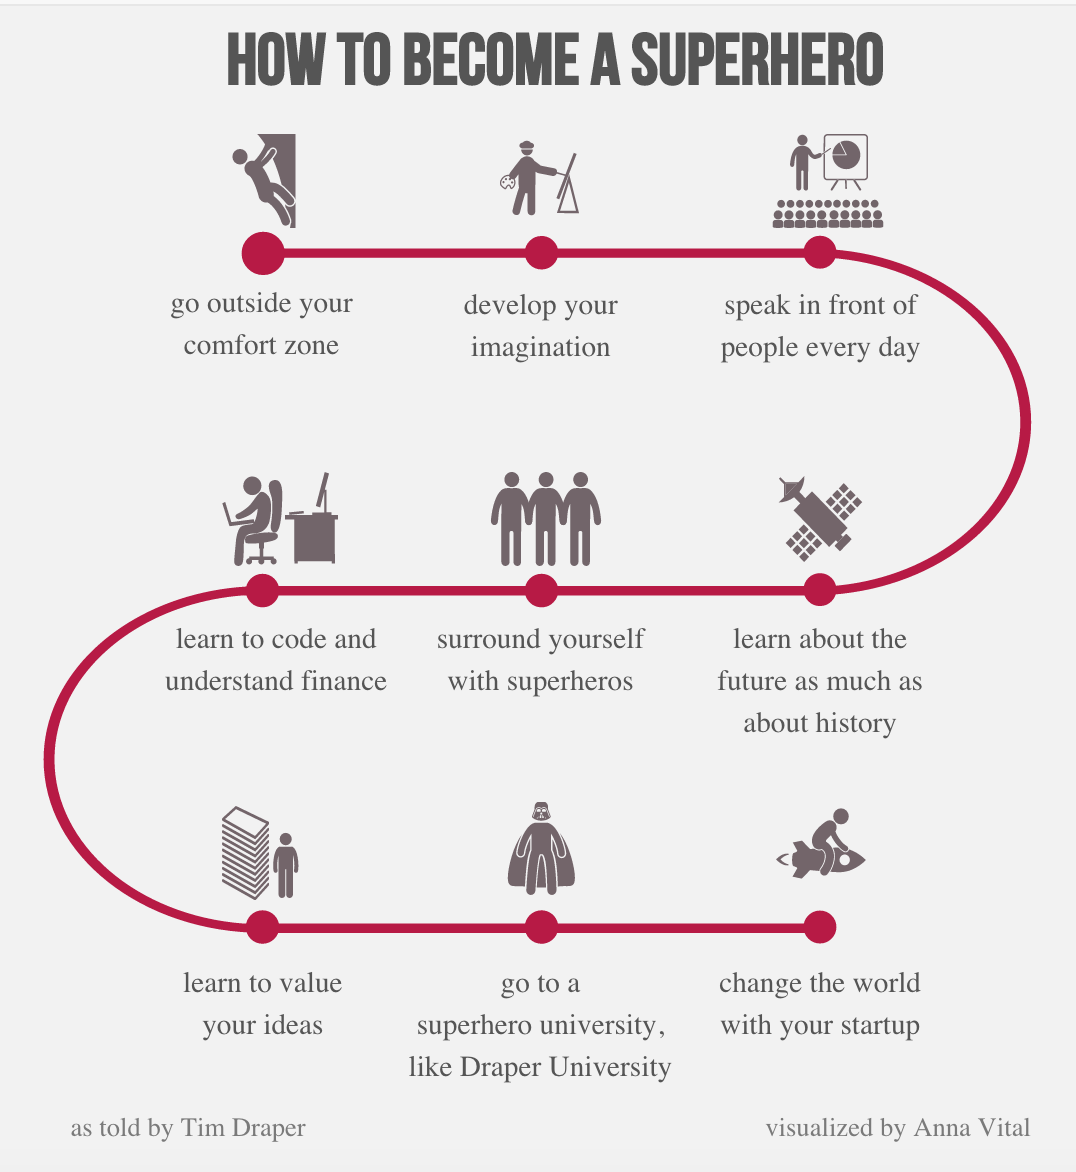 How to become a superhero? - do a #startup http://t.co/mGe54RkvH3